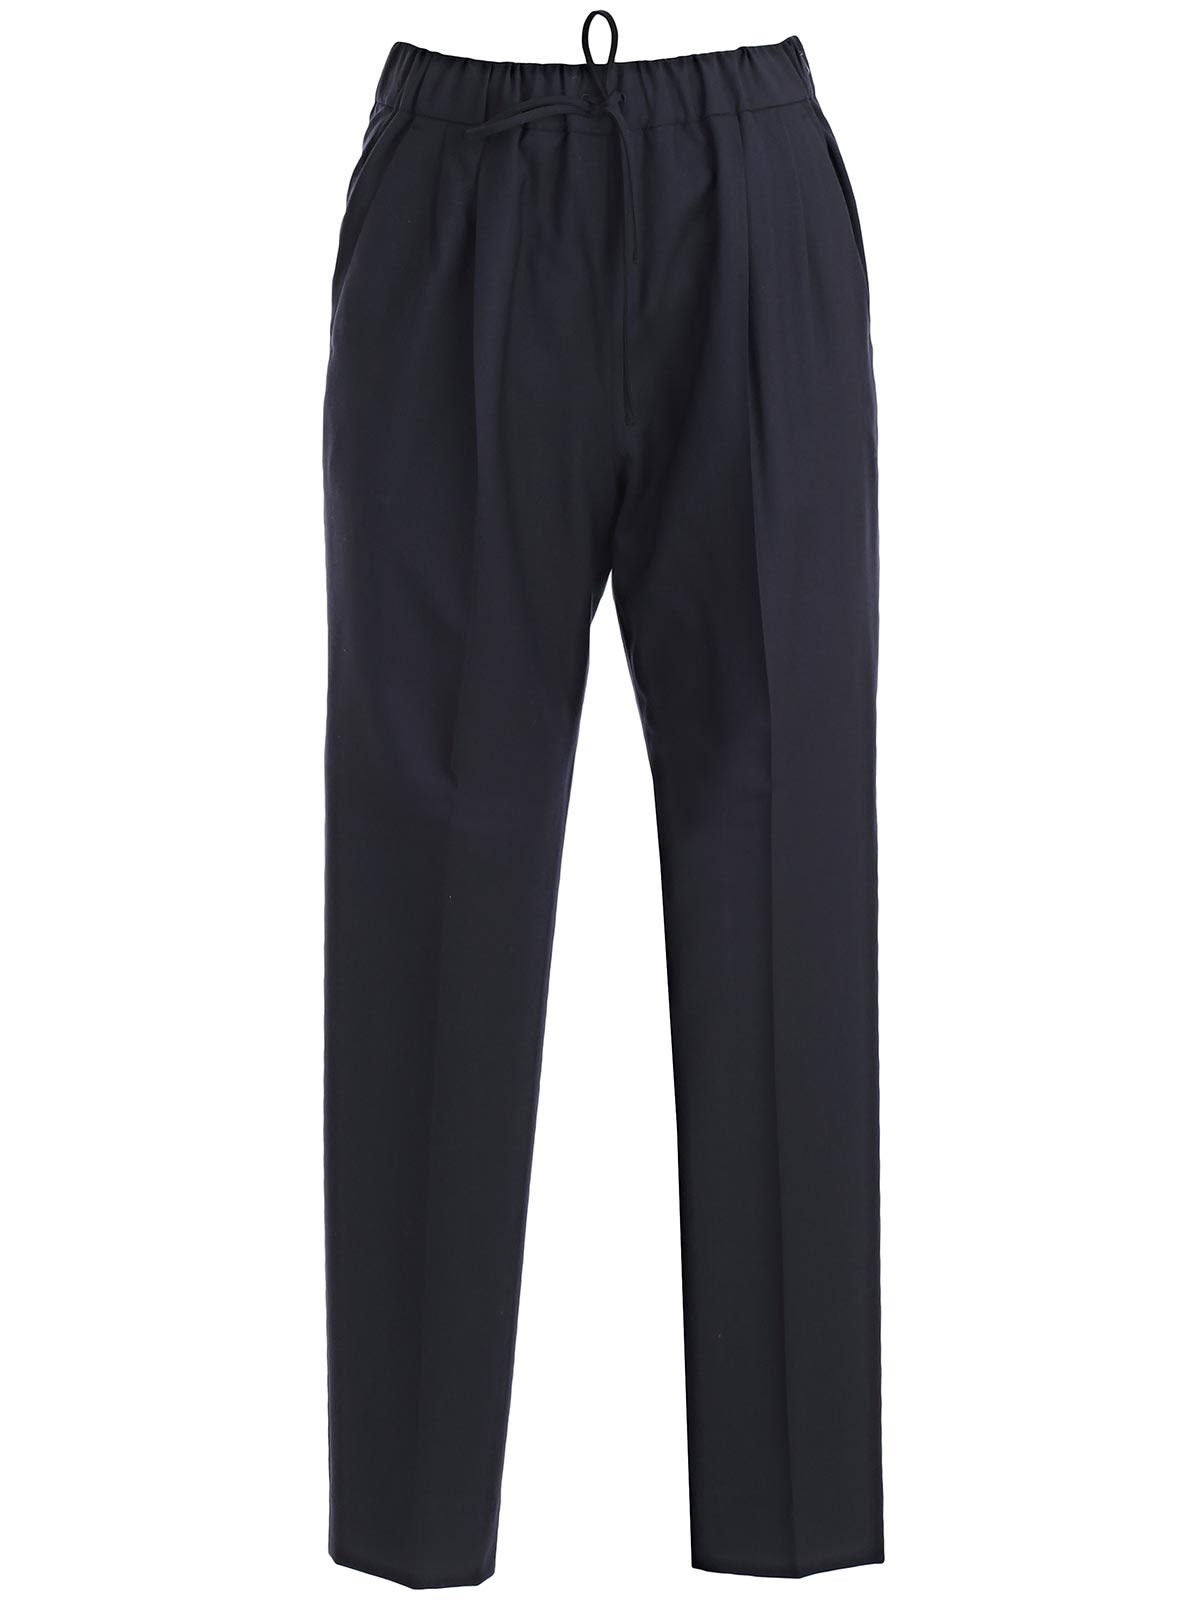 DRAWSTRING TROUSERS from Italist.com